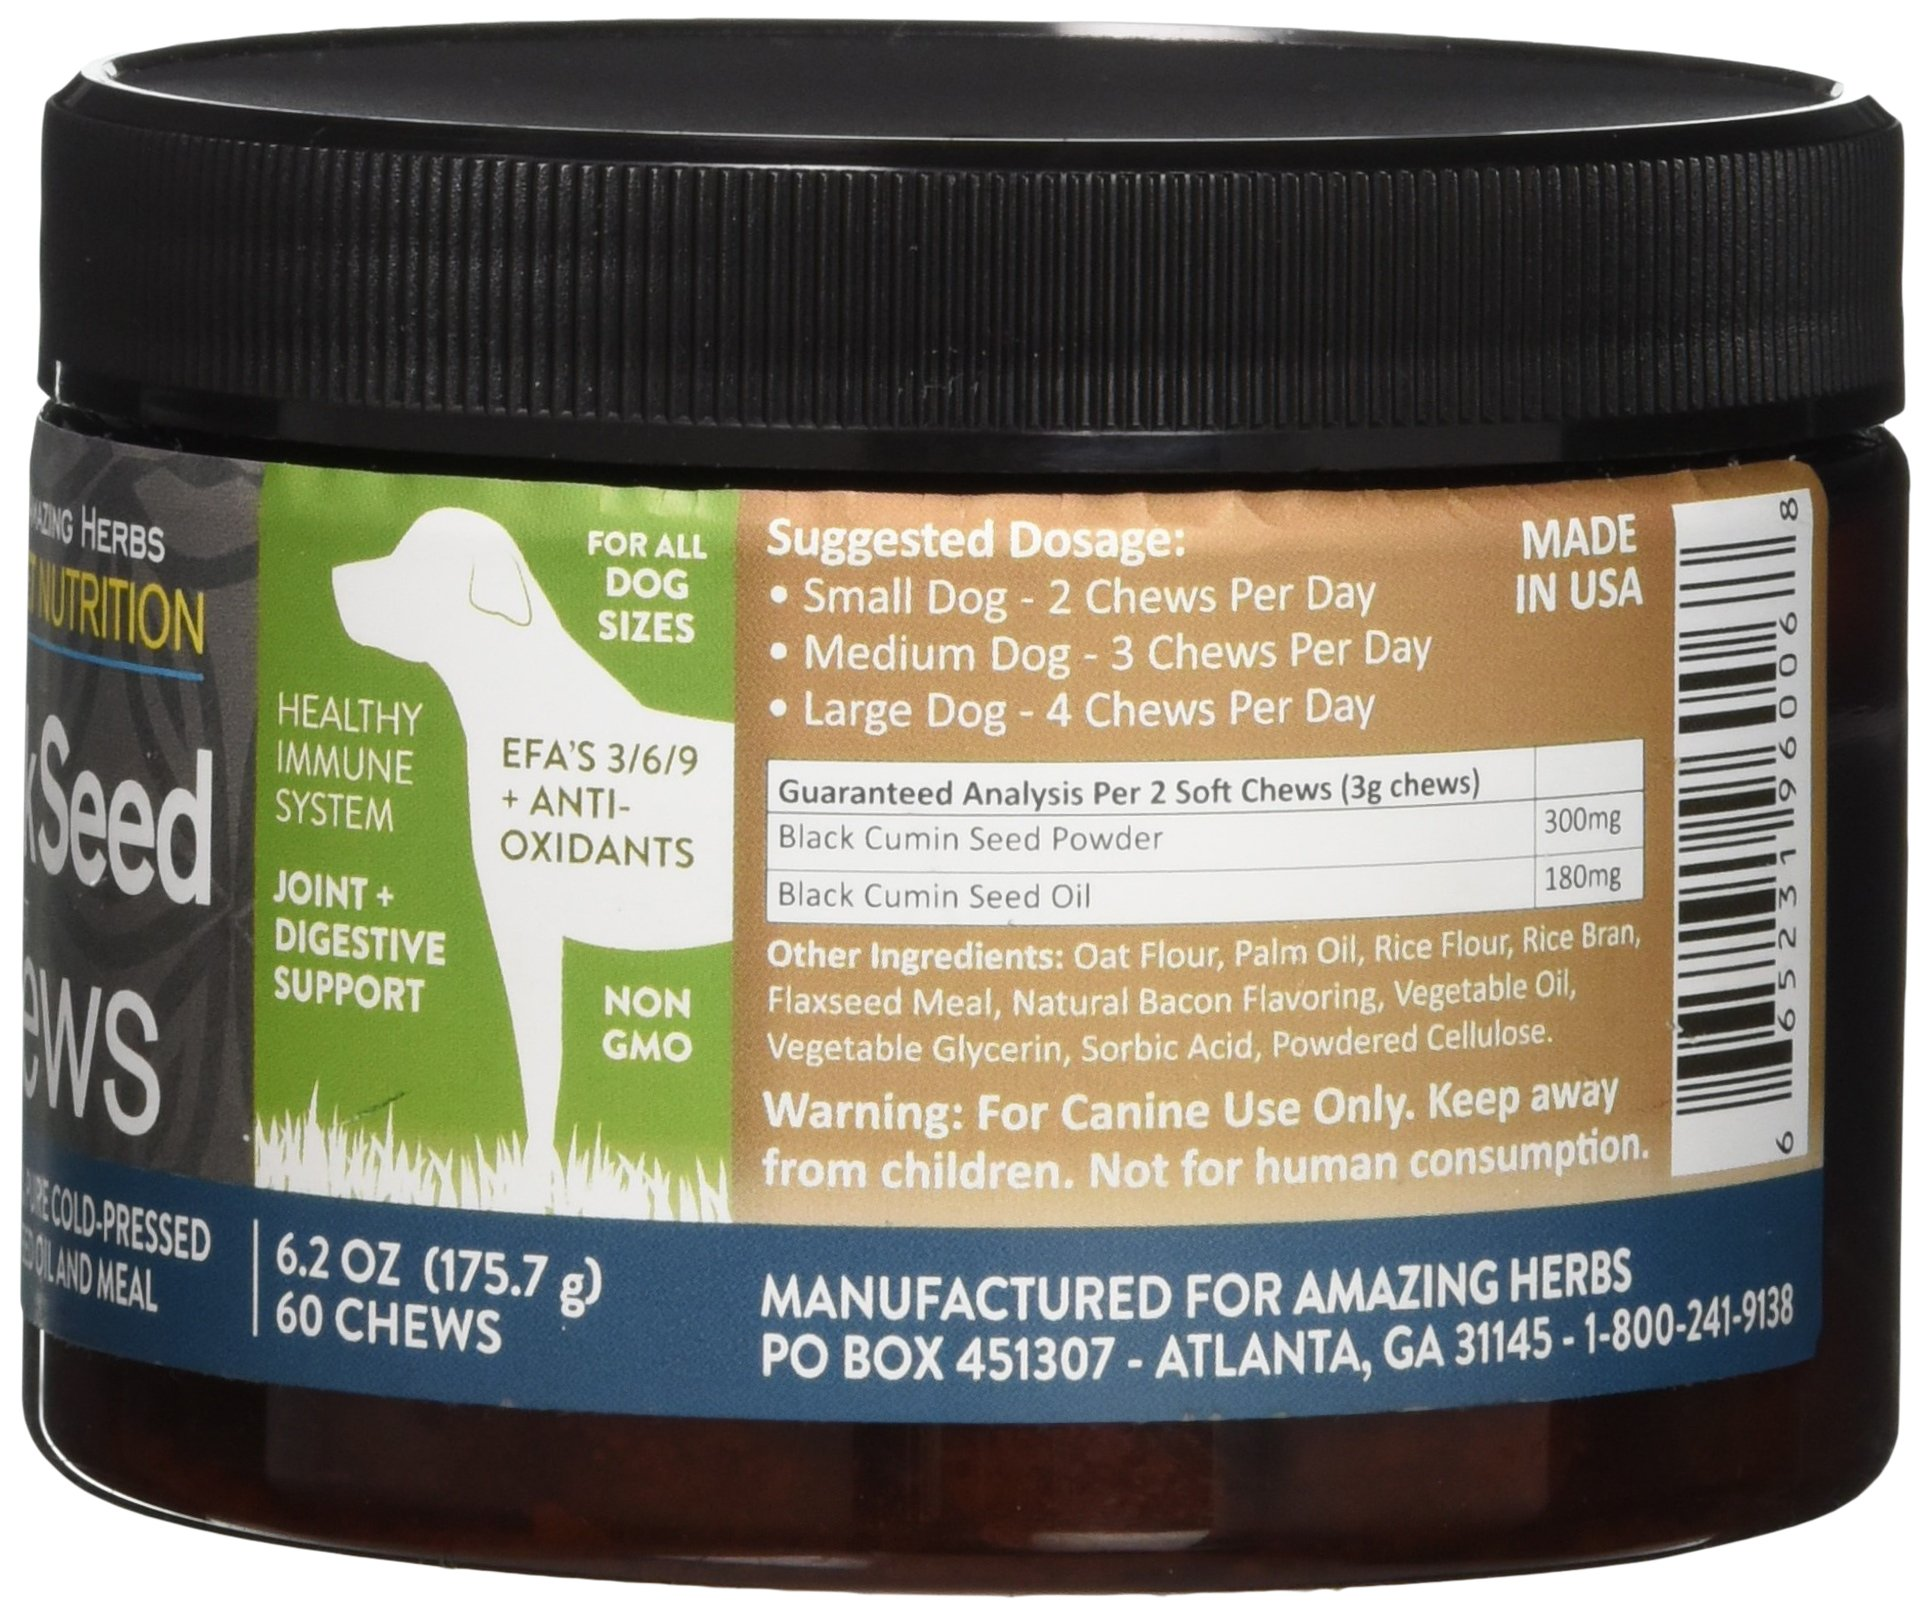 Amazing Herbs Black Seed Soft Chews for Dogs, 6.2 Gram by Amazing Herbs (Image #4)